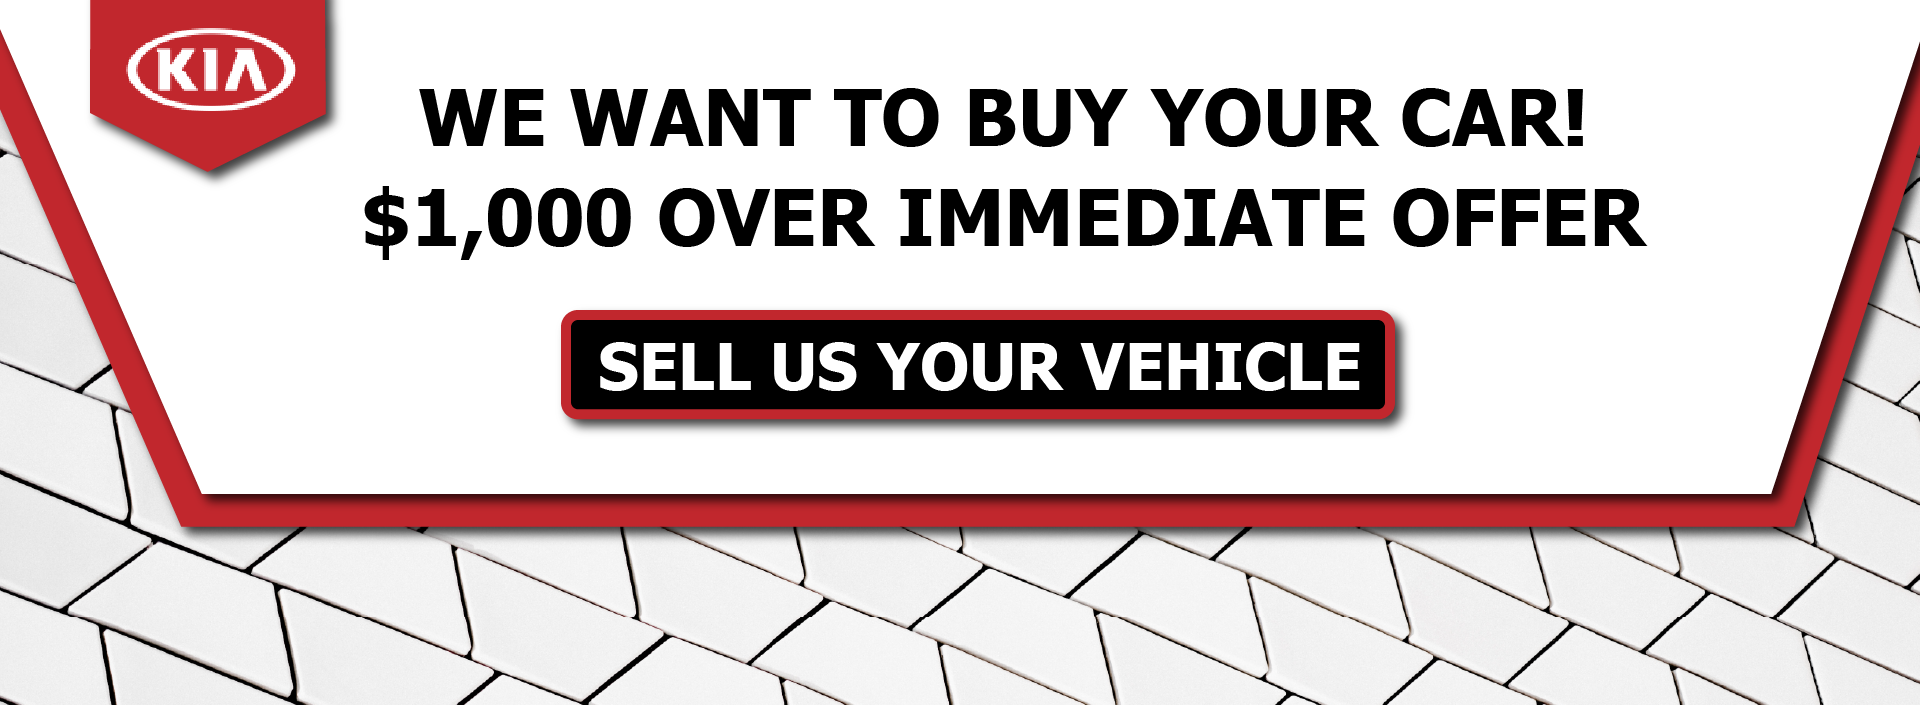 We Want to Buy Your Car_Kia FIXED